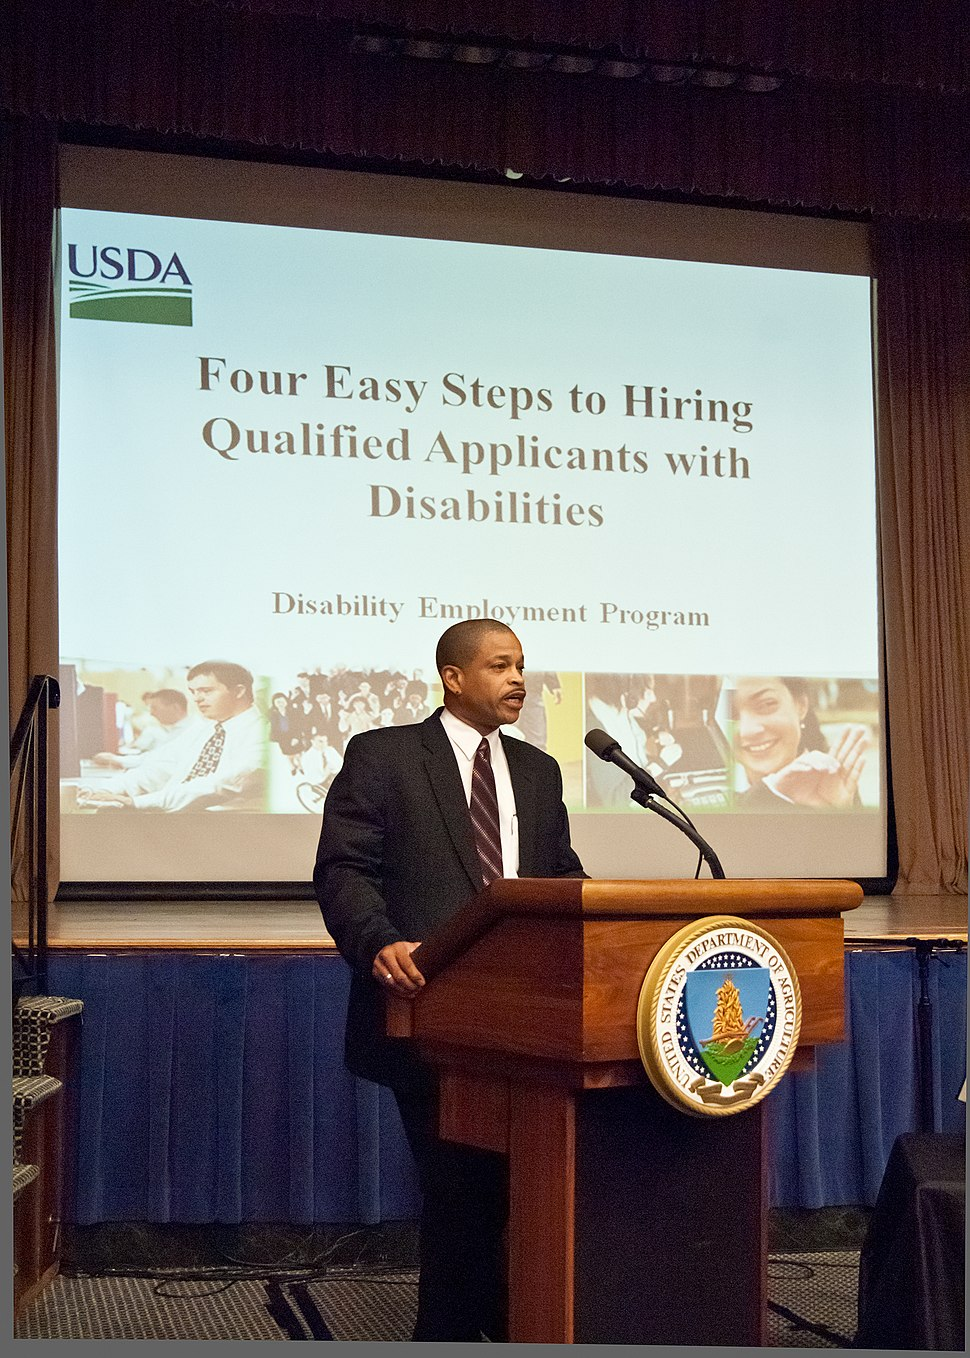 Usda hiring applicants with disabilities